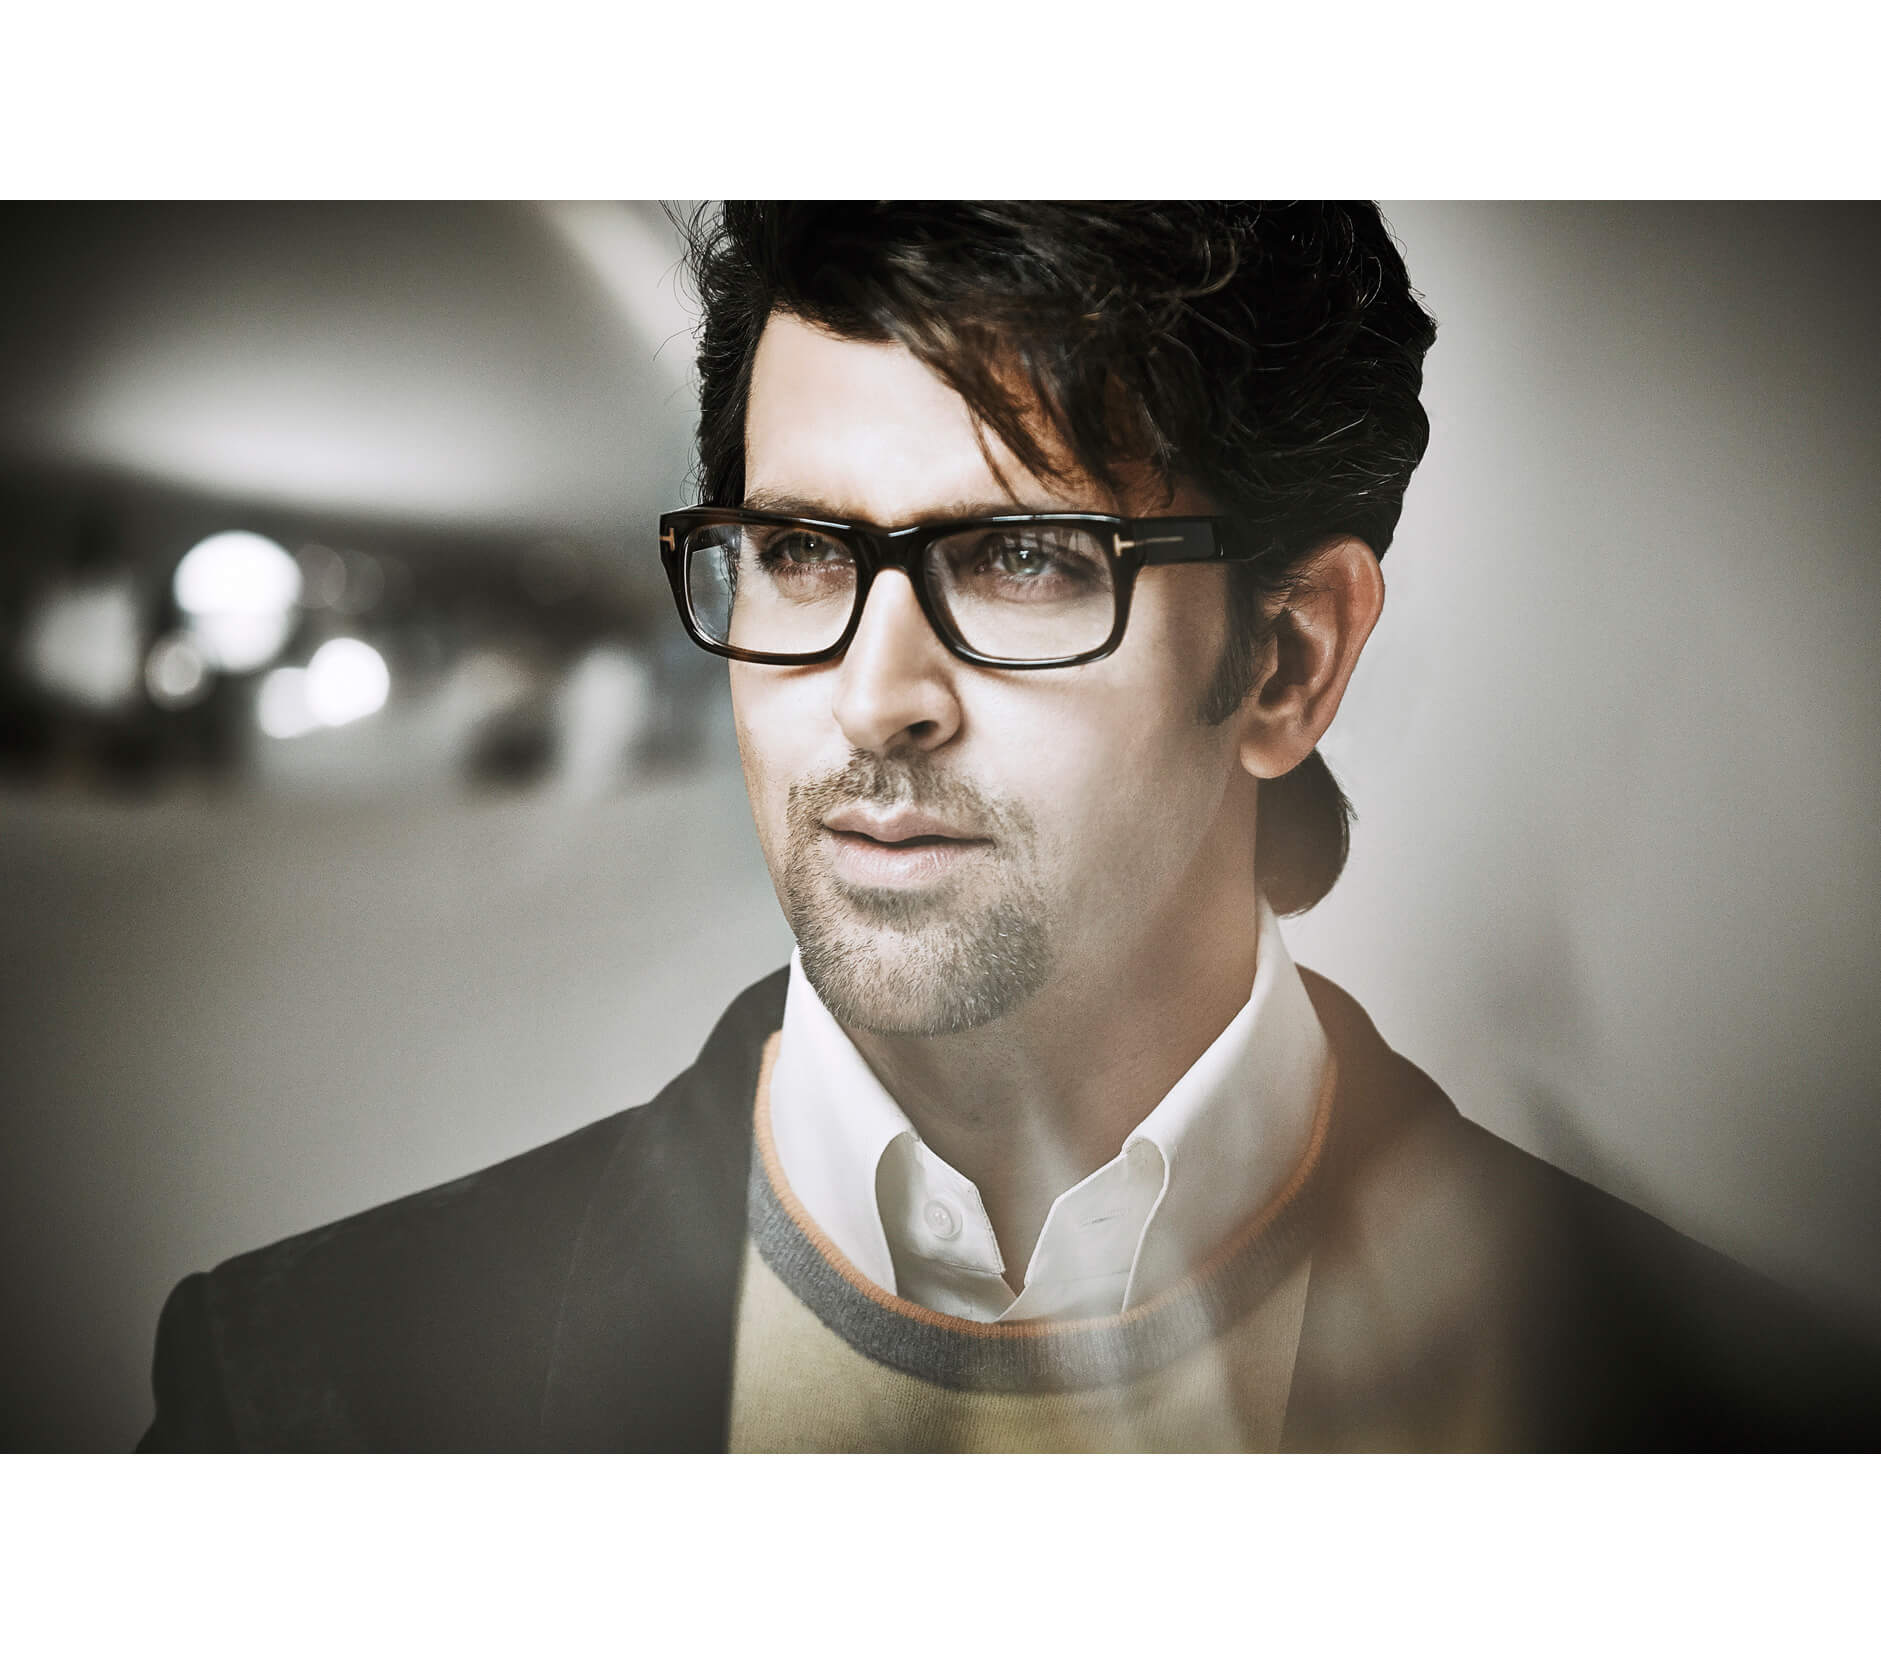 Hrithik Roshan Age, Movie, Height, Wife, Photos(images), Height, News, Dance, Son, Birthday, Family, Biography, Kids, Awards, Education,religion, Instagram, Twitter, Facebook, Wiki, Youtube, ( (158)